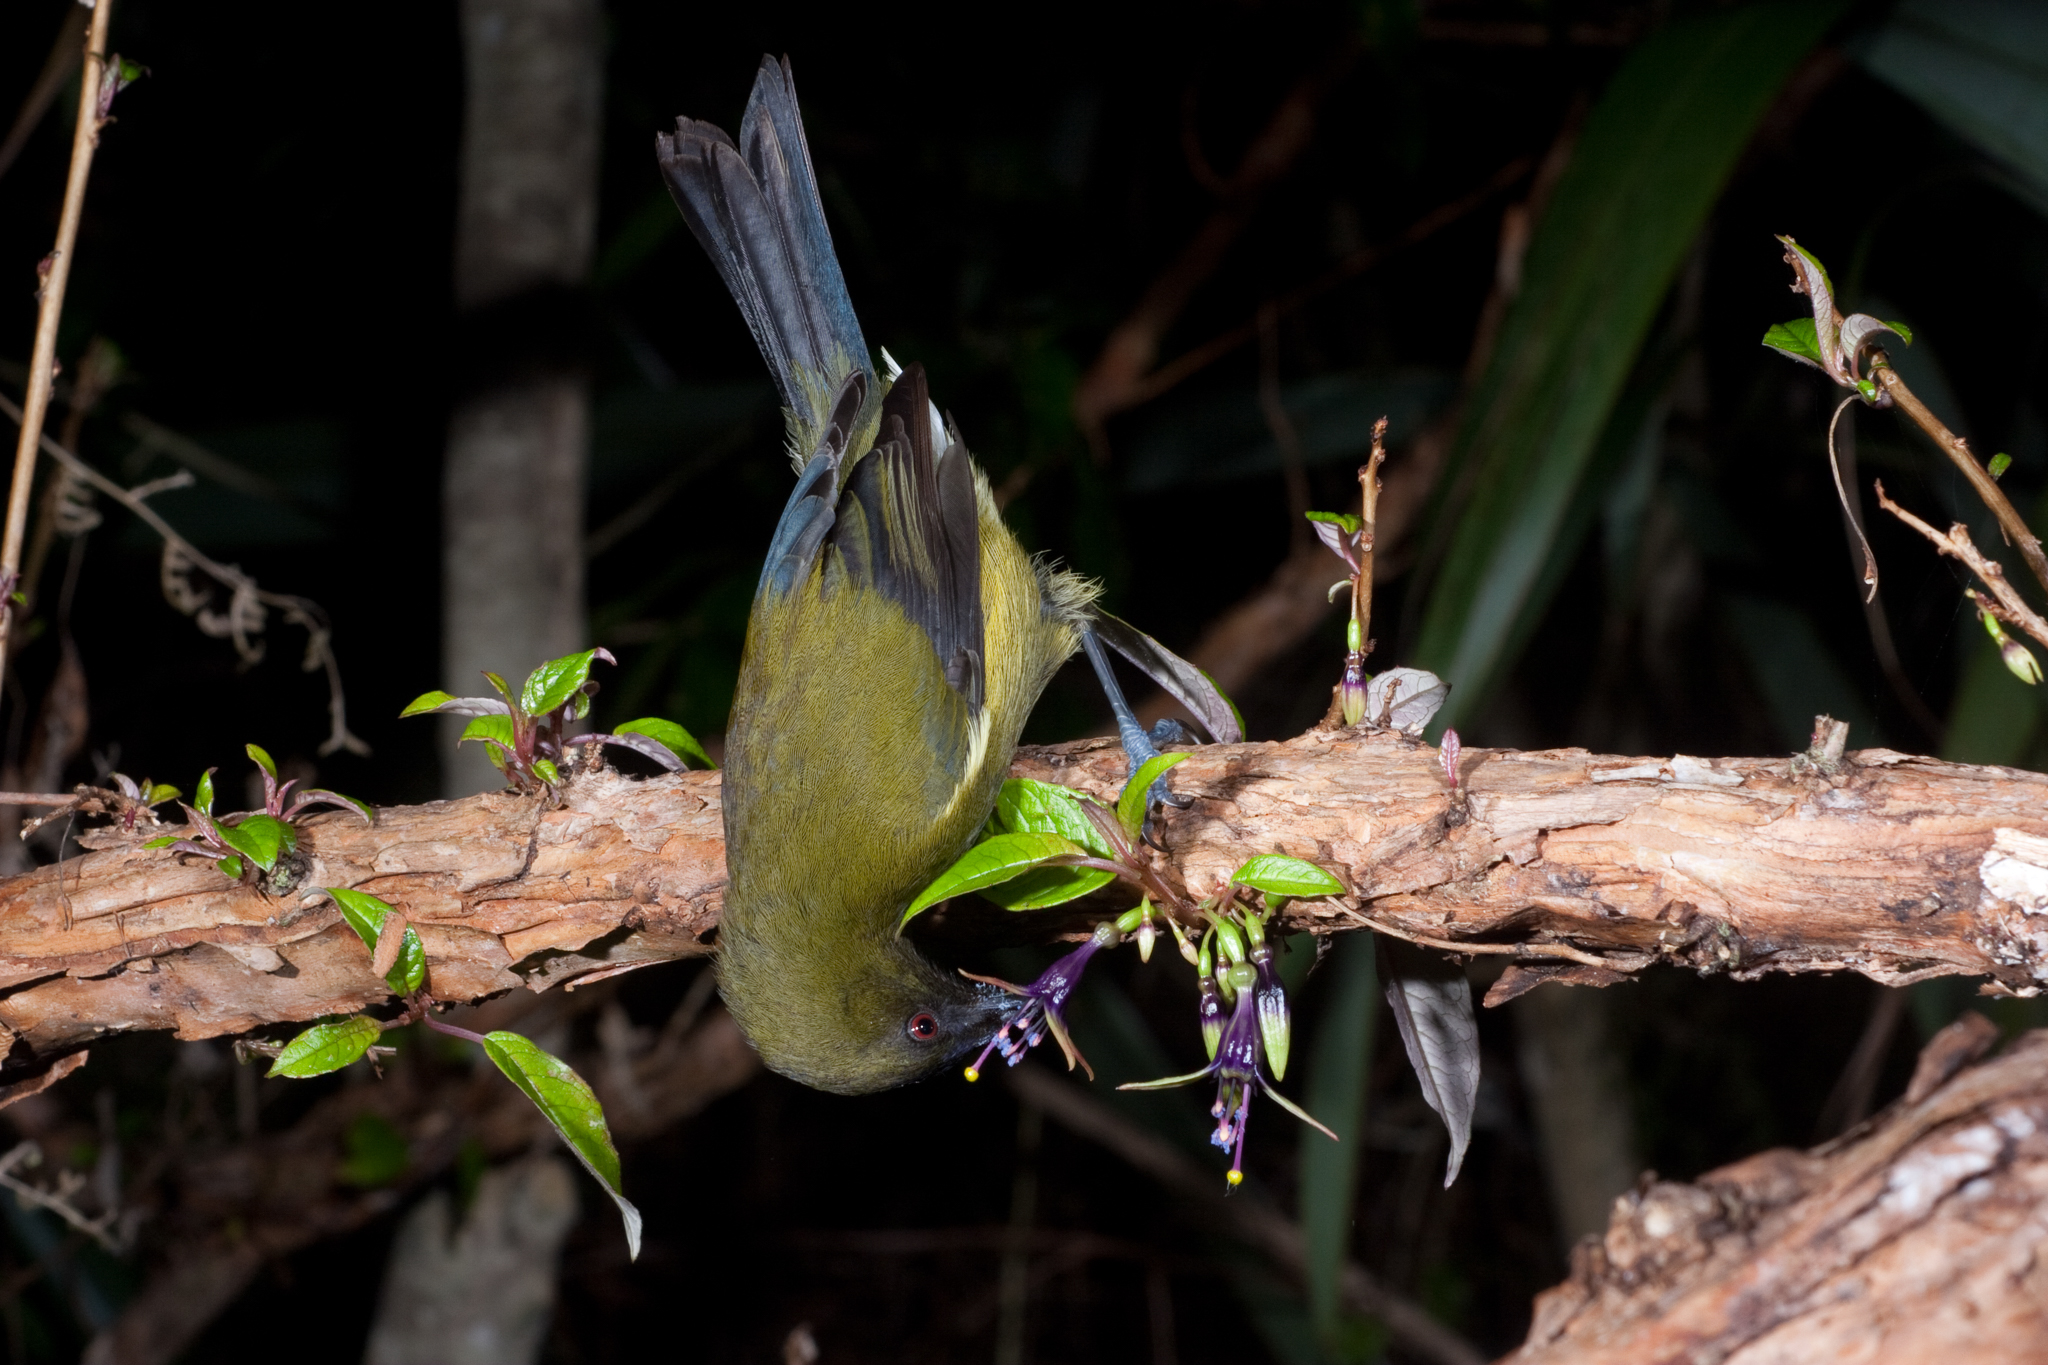 A bellbird (Anthornis melanura) feeds on nectar from a fuchsia tree (Fuchsia excorticata). The bird gets its name from its bell-like vocalizations, which have been appreciated by modern birders and early European explorers alike. Photograph copyright Nga Manu